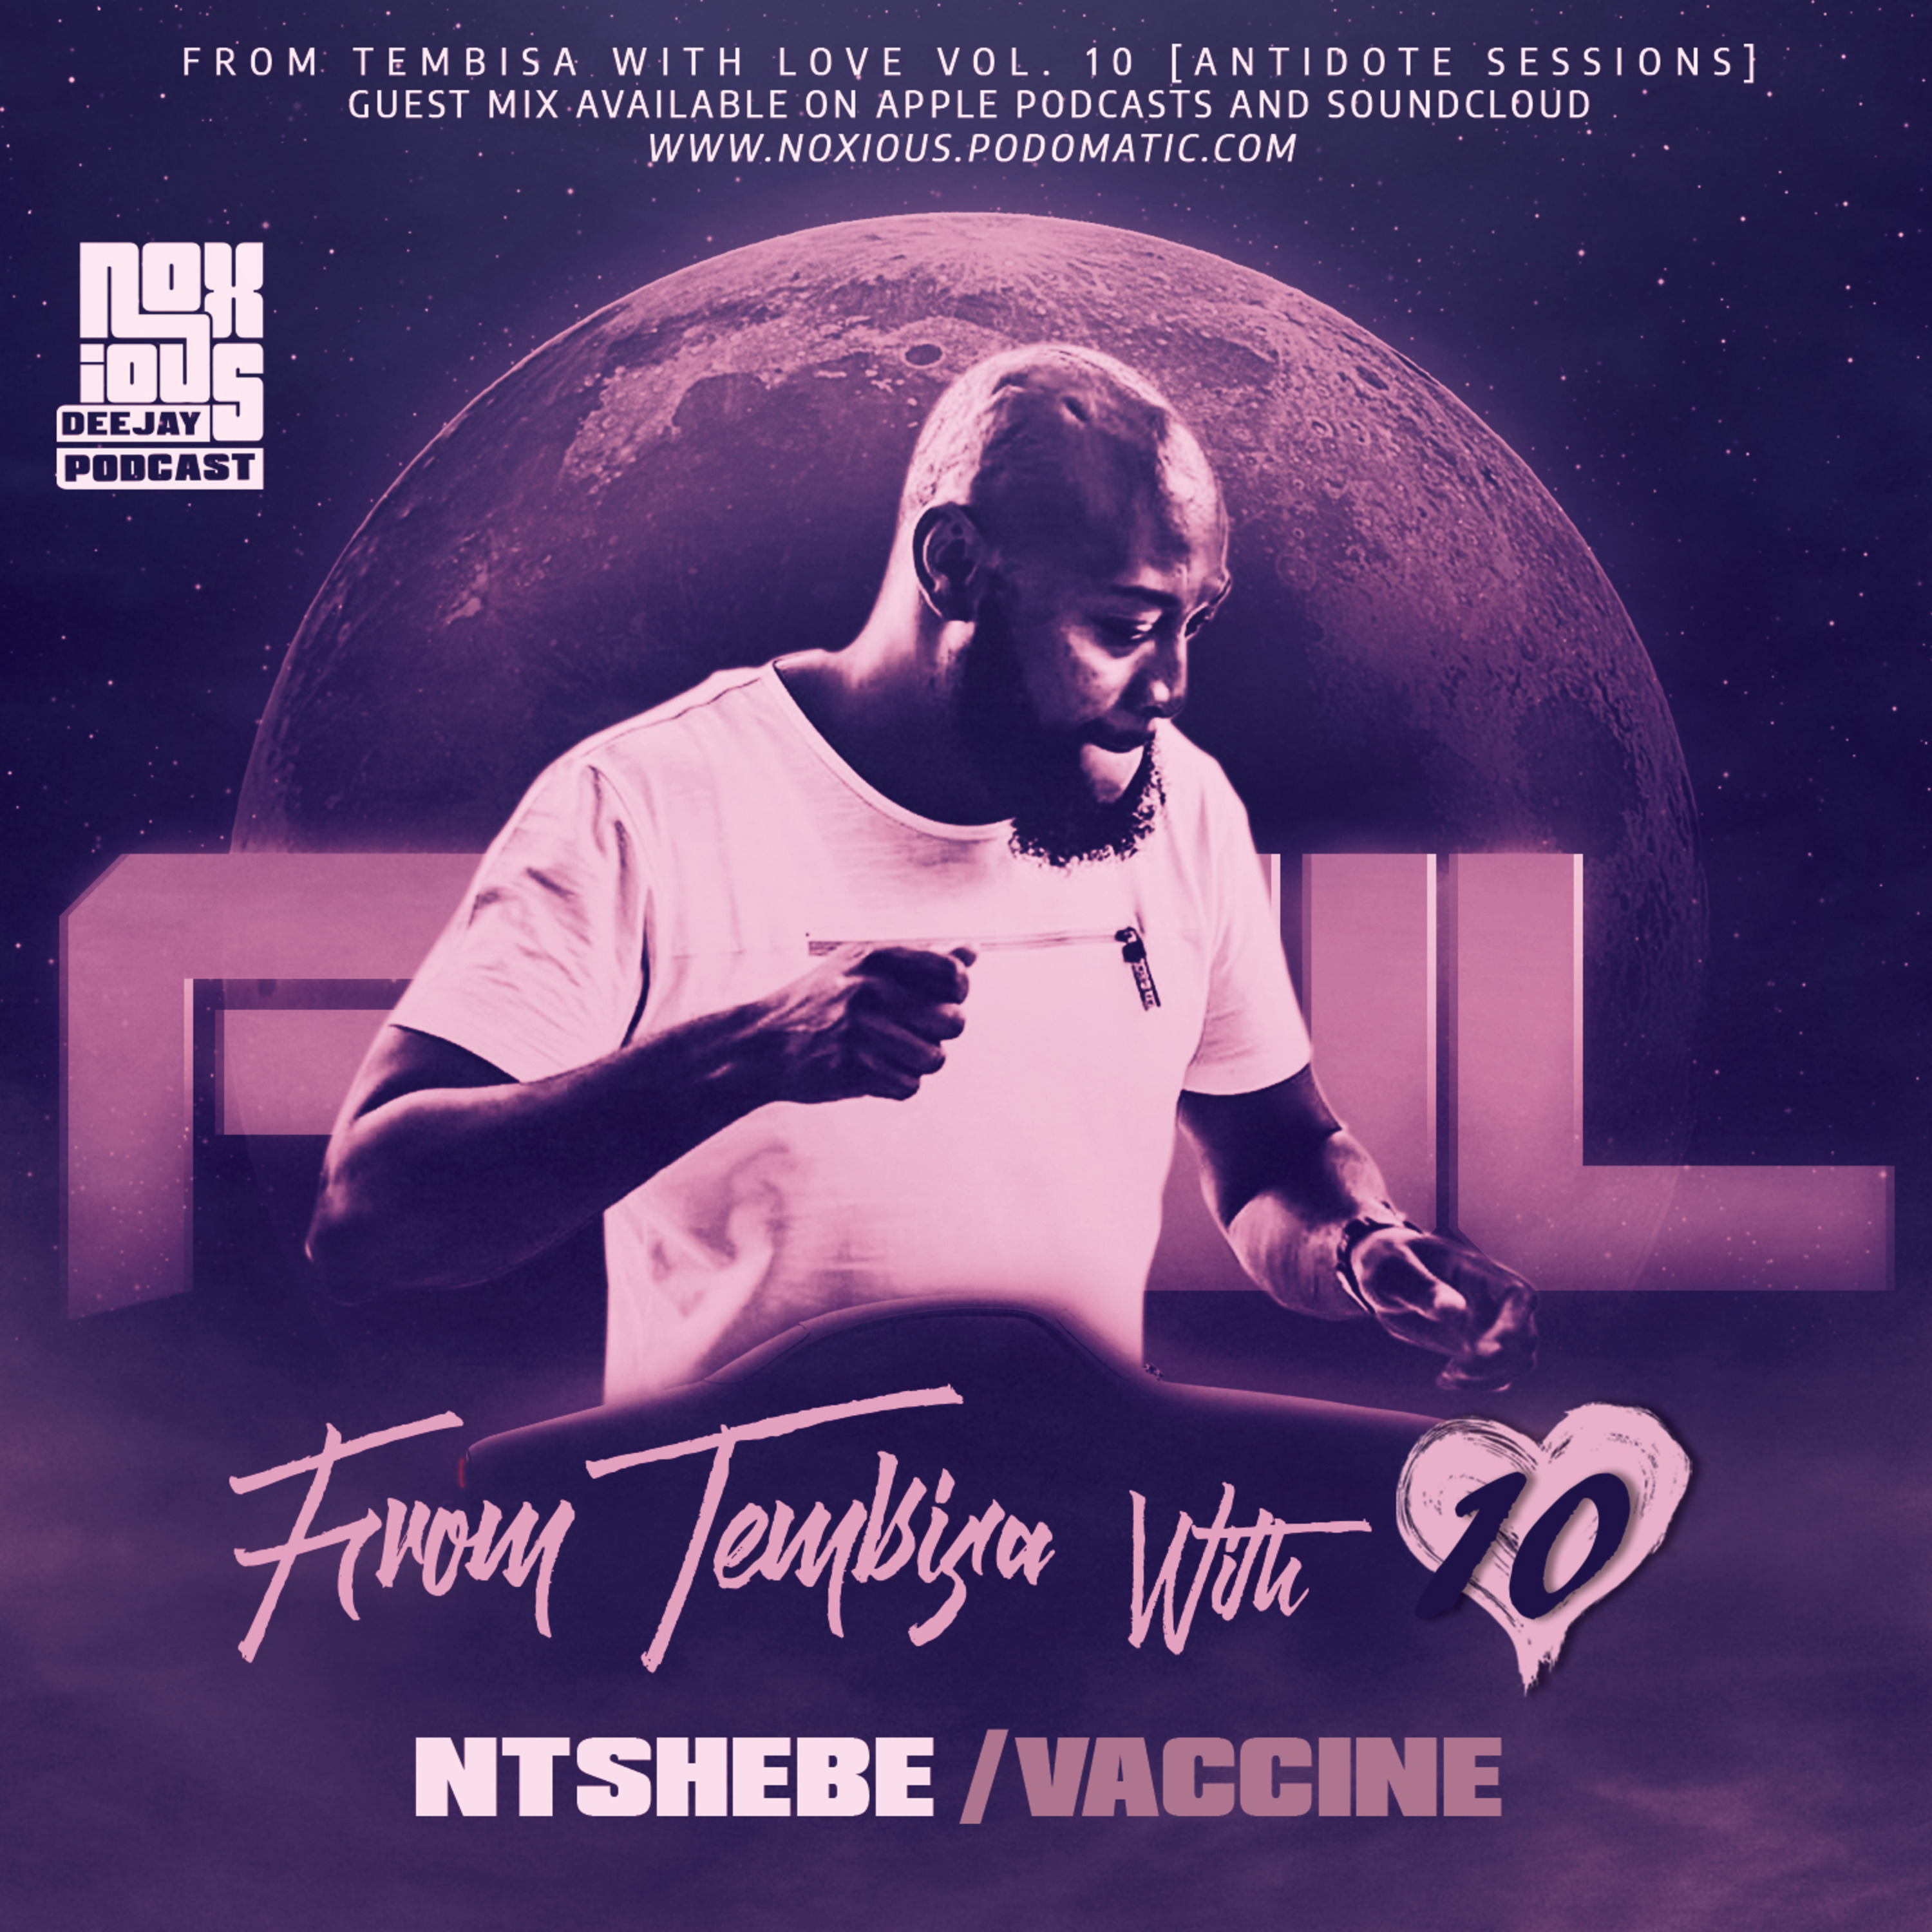 FTWL10 [Antidote Sessions] Ntshebe Vaccine